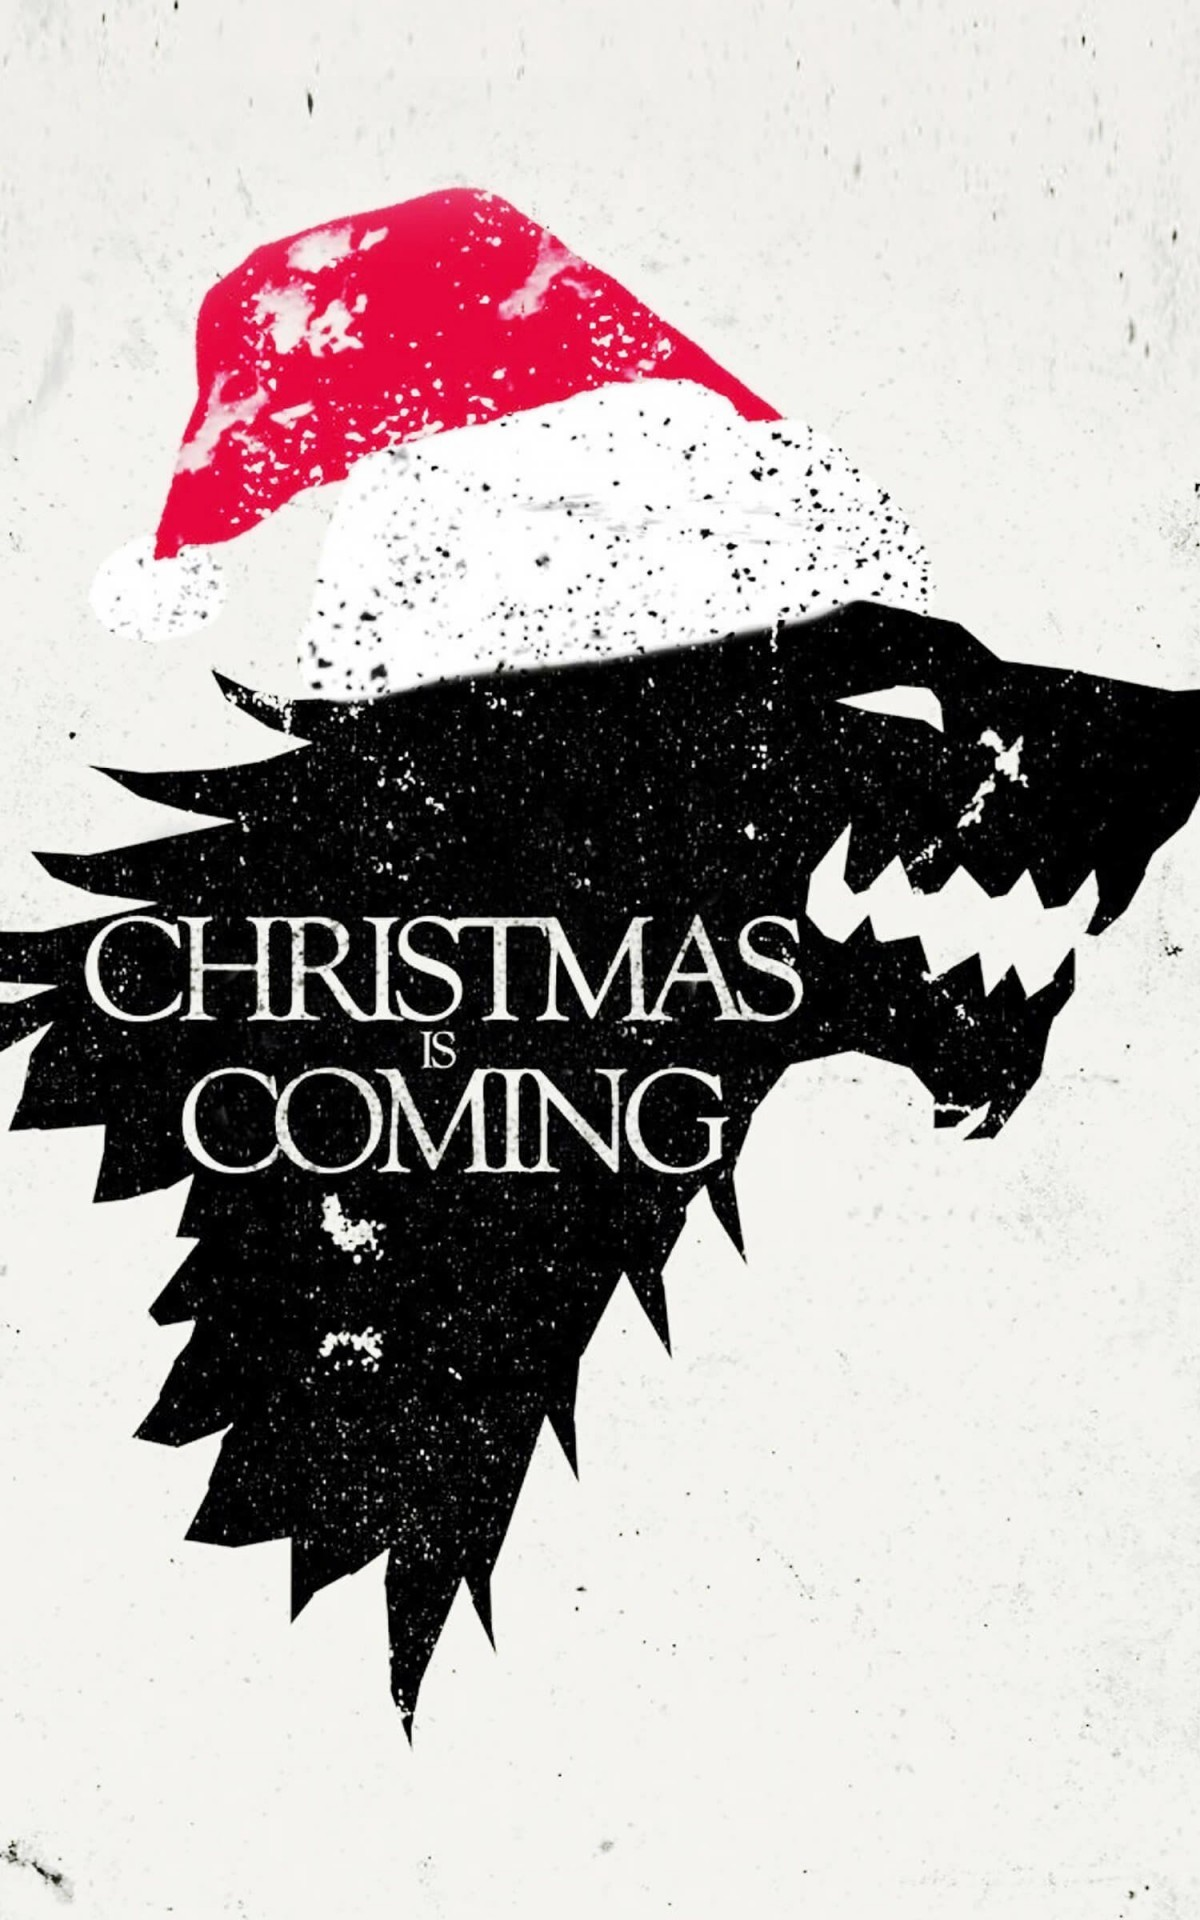 Christmas is Coming Wallpaper for Amazon Kindle Fire HDX